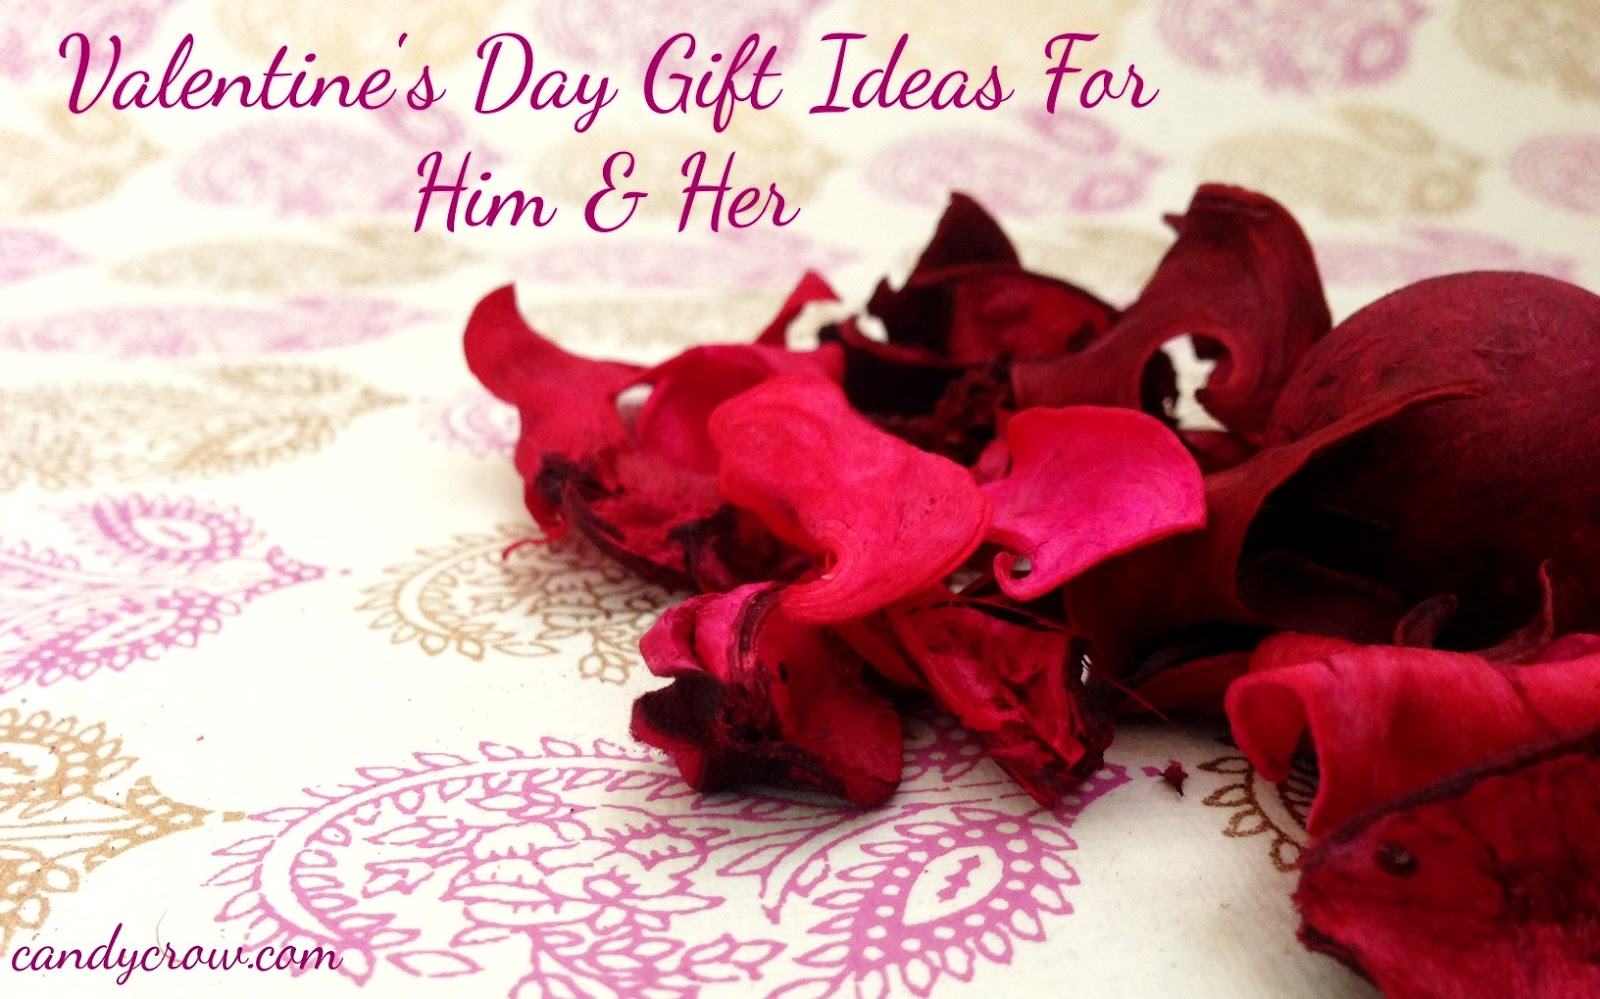 valentines day sex ideas for him